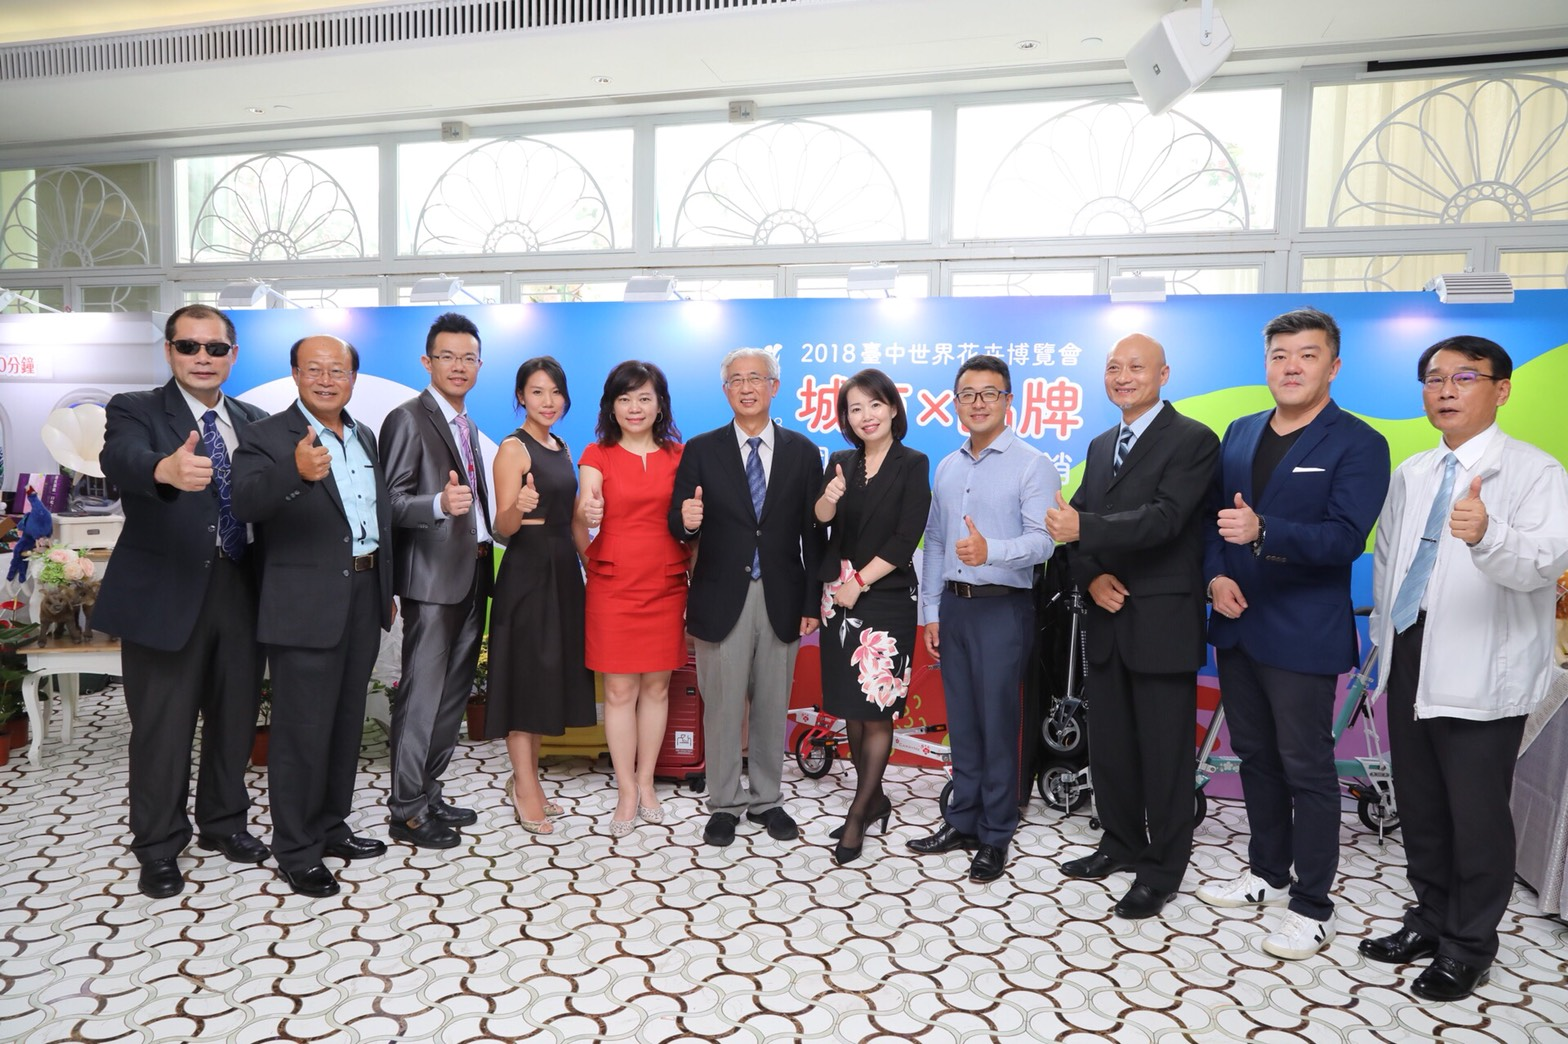 Taichung City Government introduces the special offering of「One ticket to Flora Expo with all pass for fun」to attract the international tourists to visit Taichung